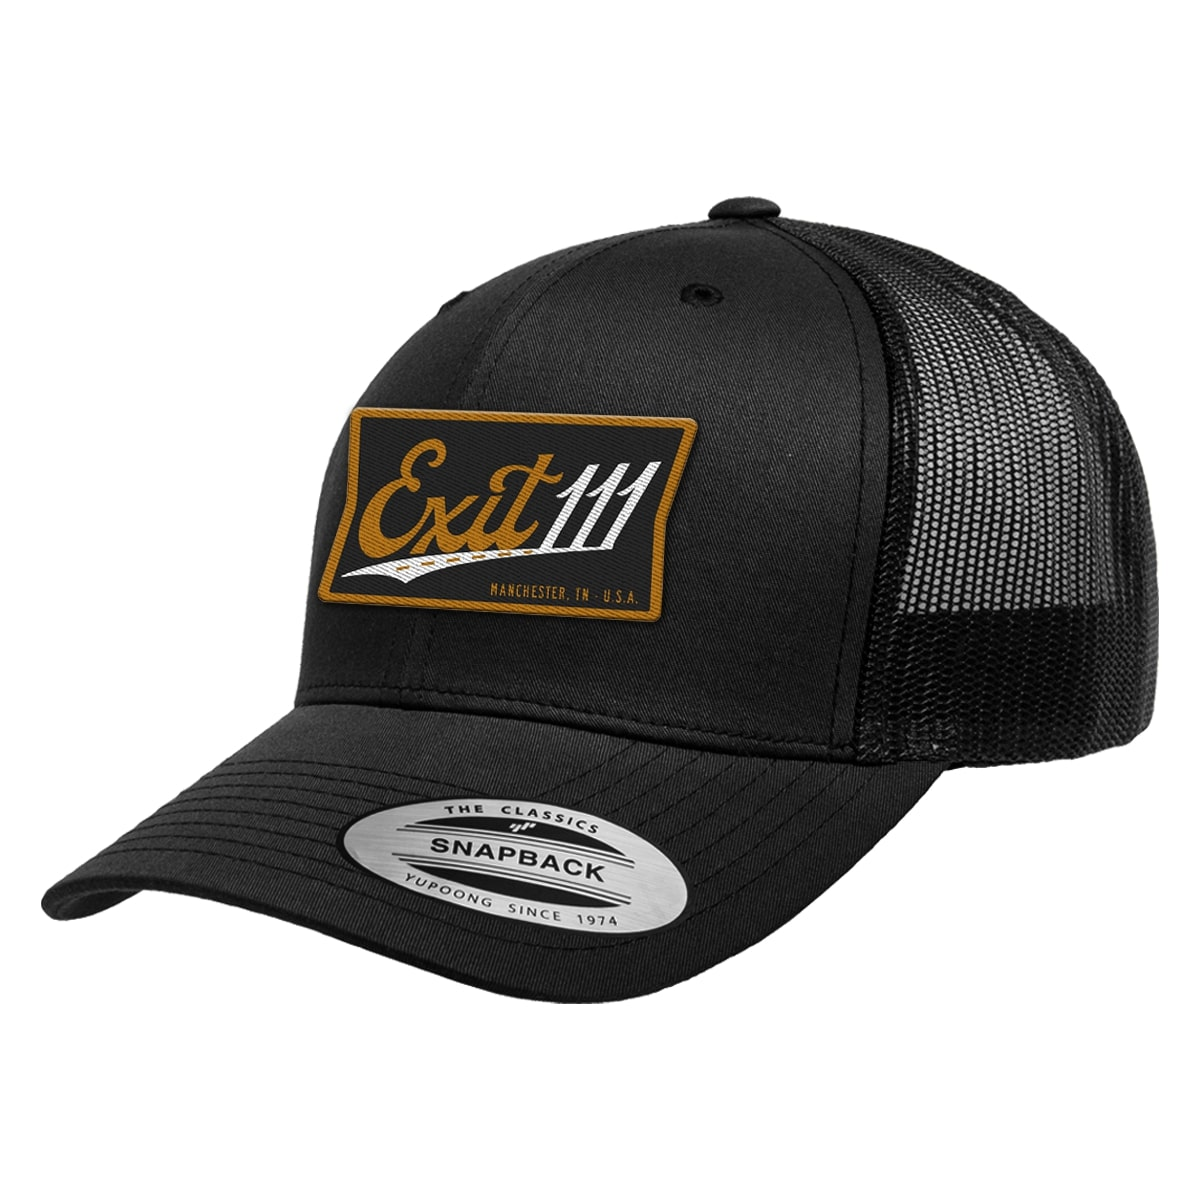 Highway Patch Hat